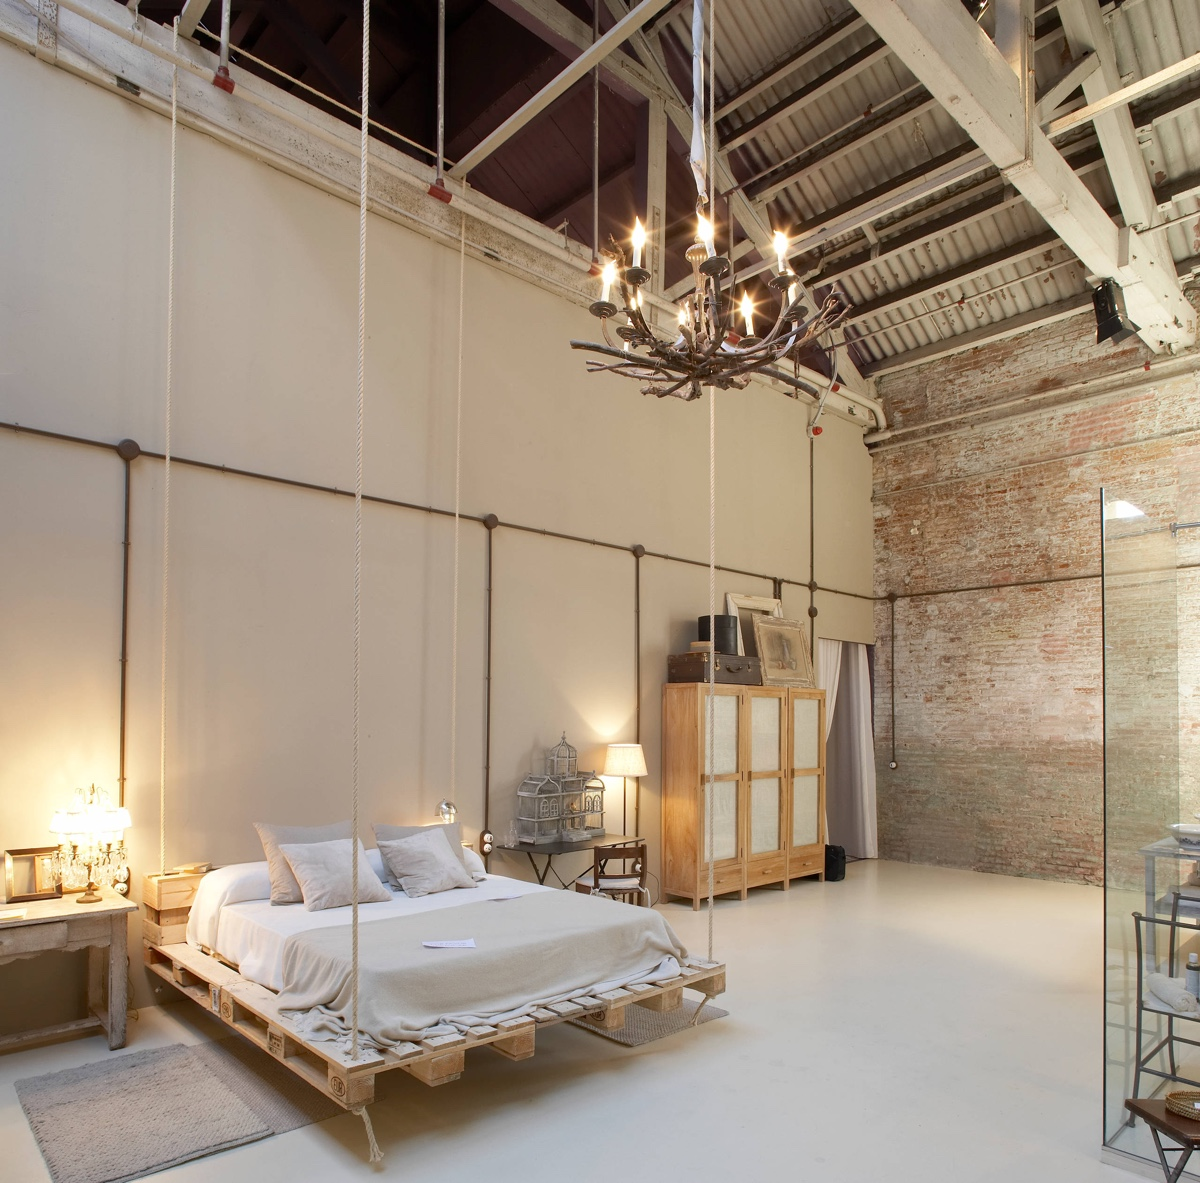 barn-style-with-chandelier-exposed-brick-bedroom